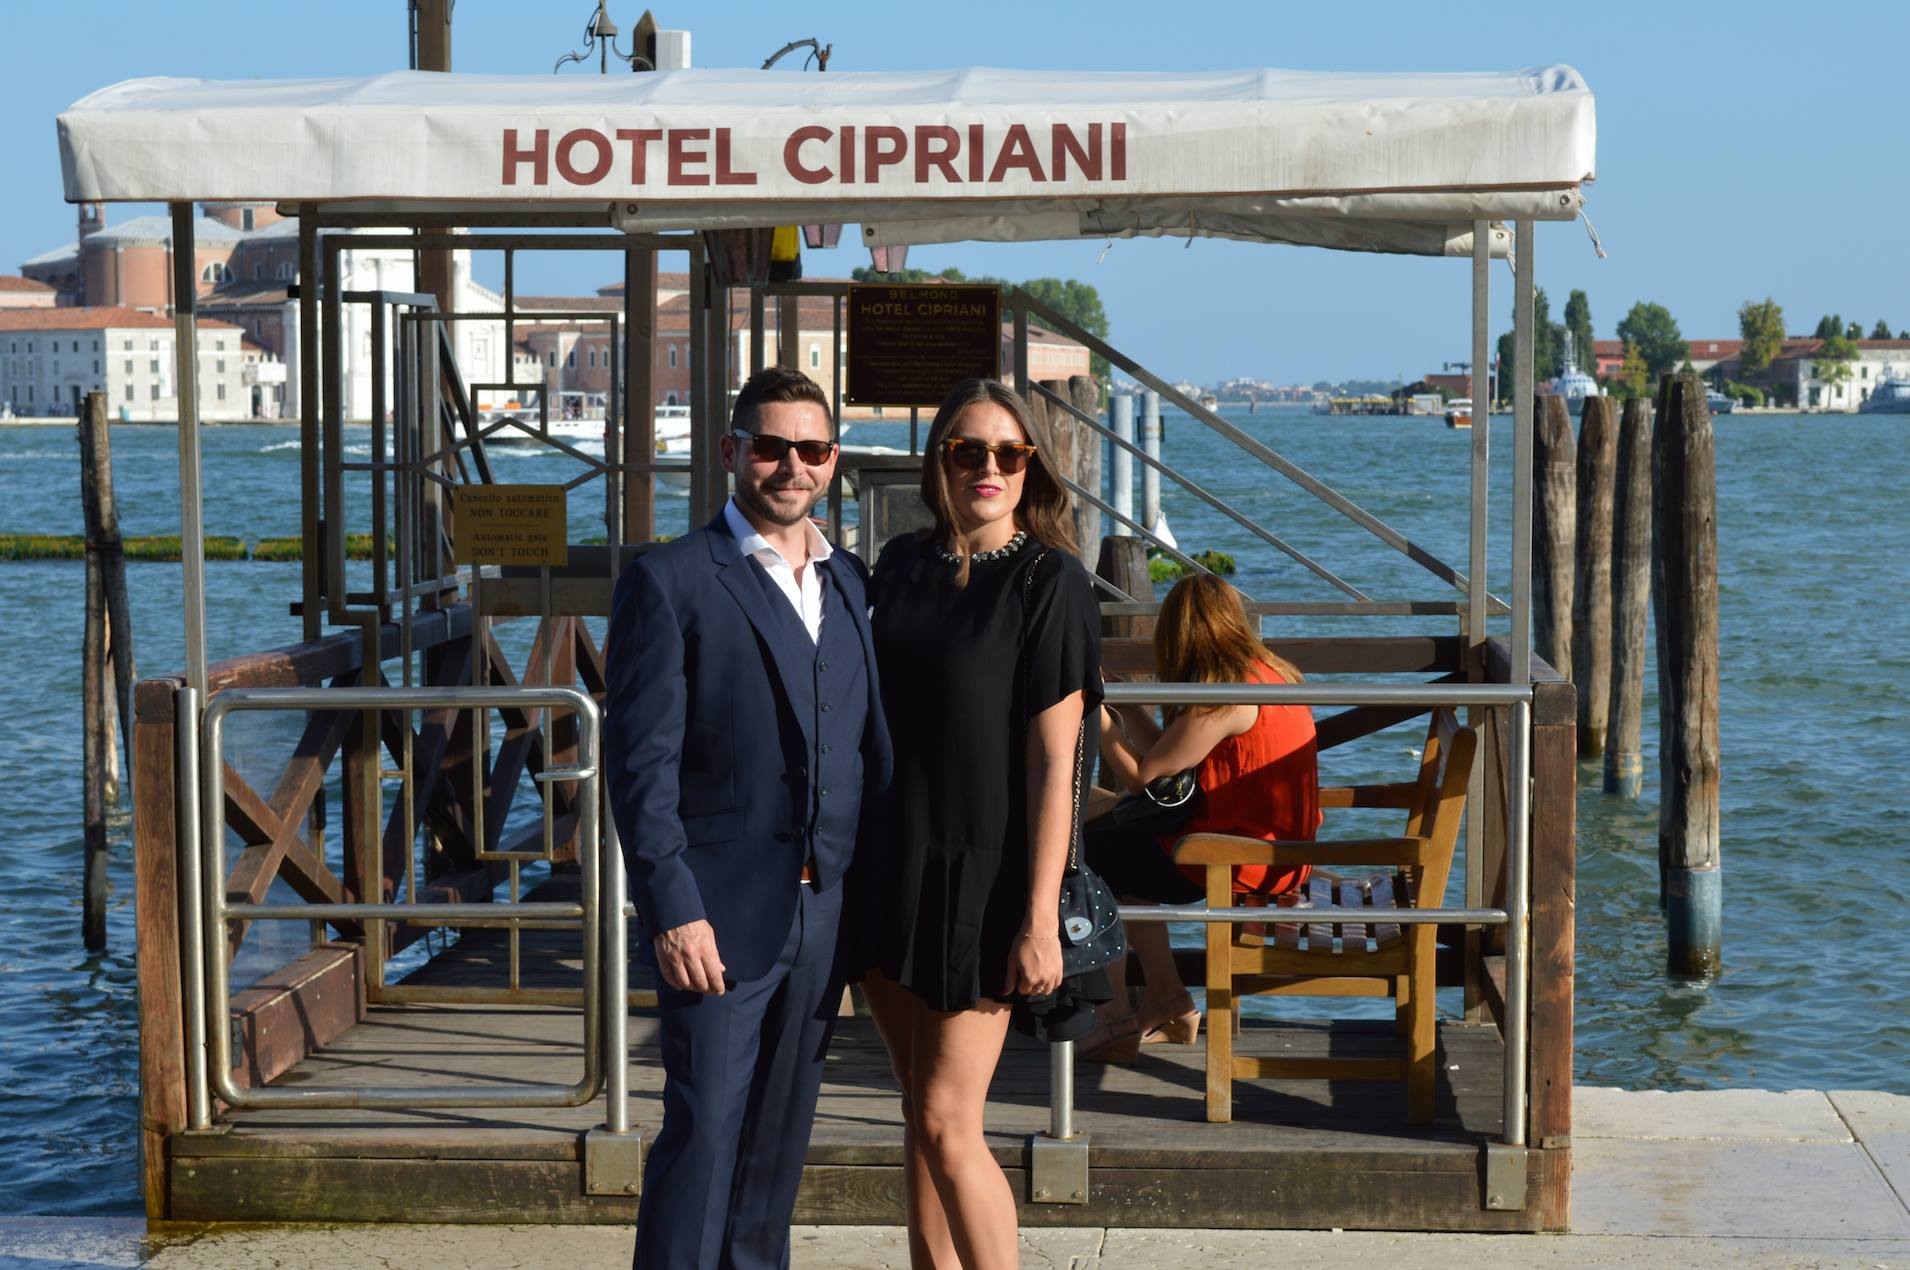 Catching the boat over to Belmond Cipriani Venice